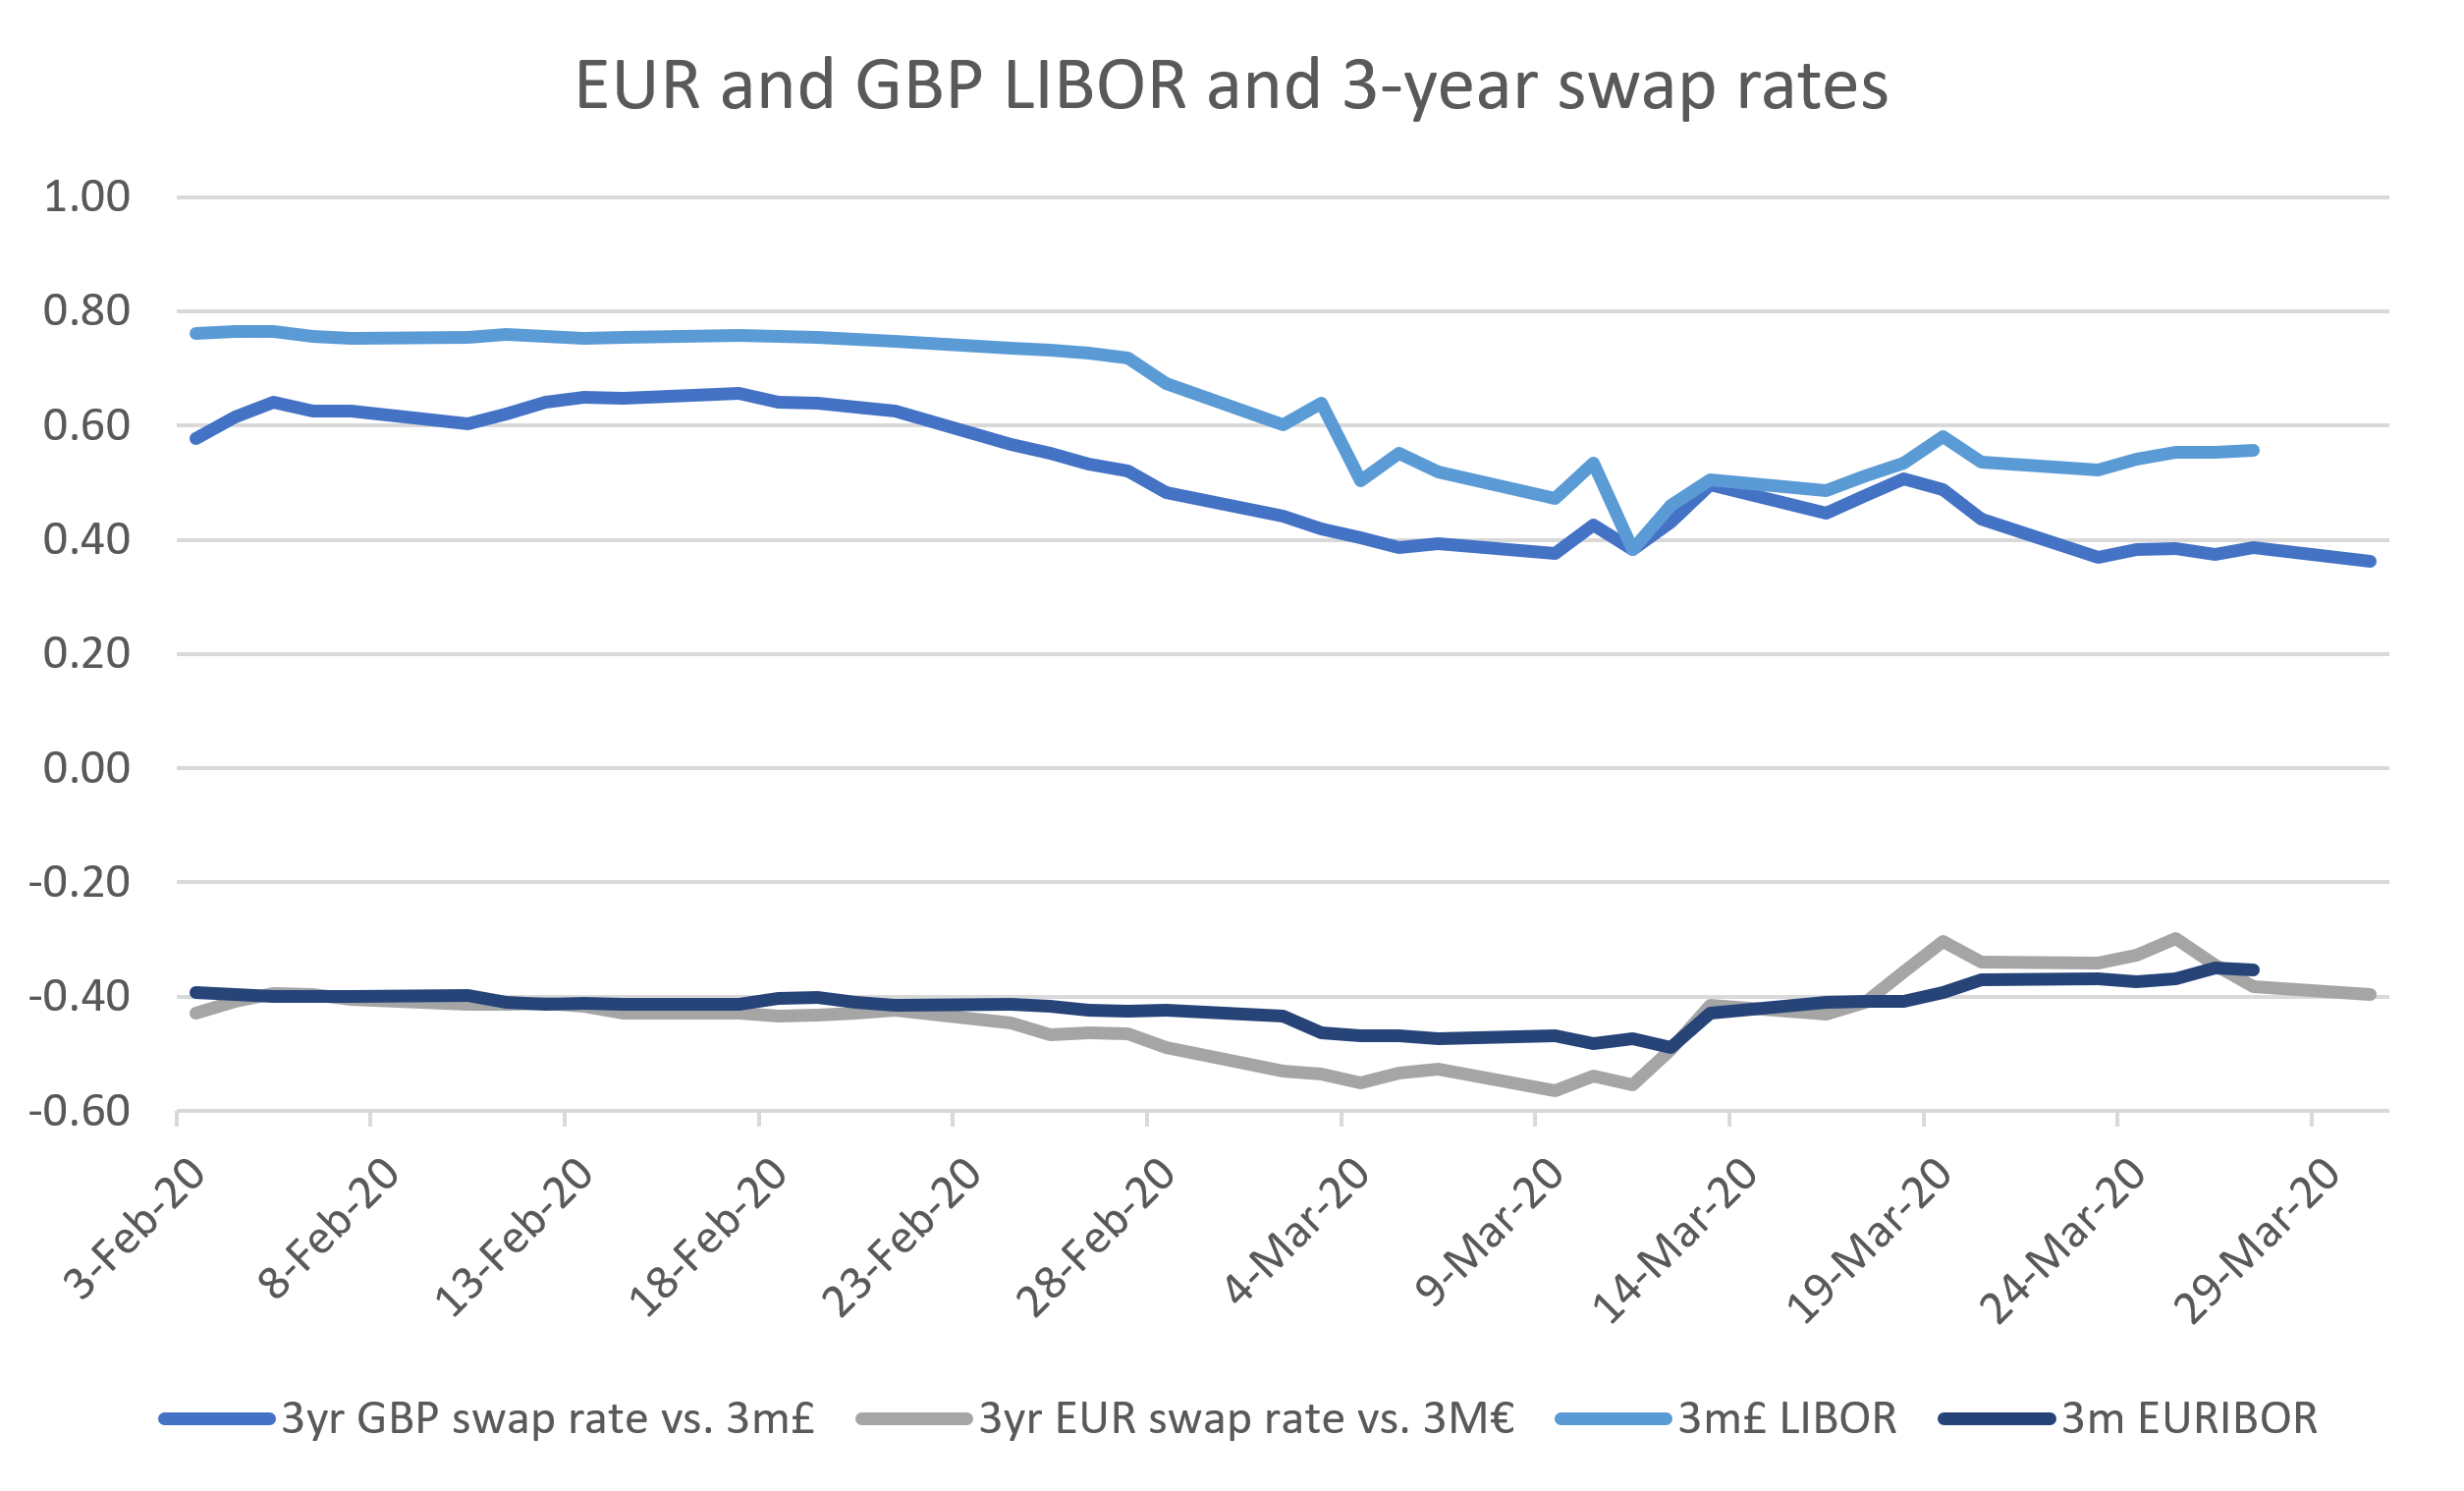 EUR and GBP LIBOR and 3-year swap rates